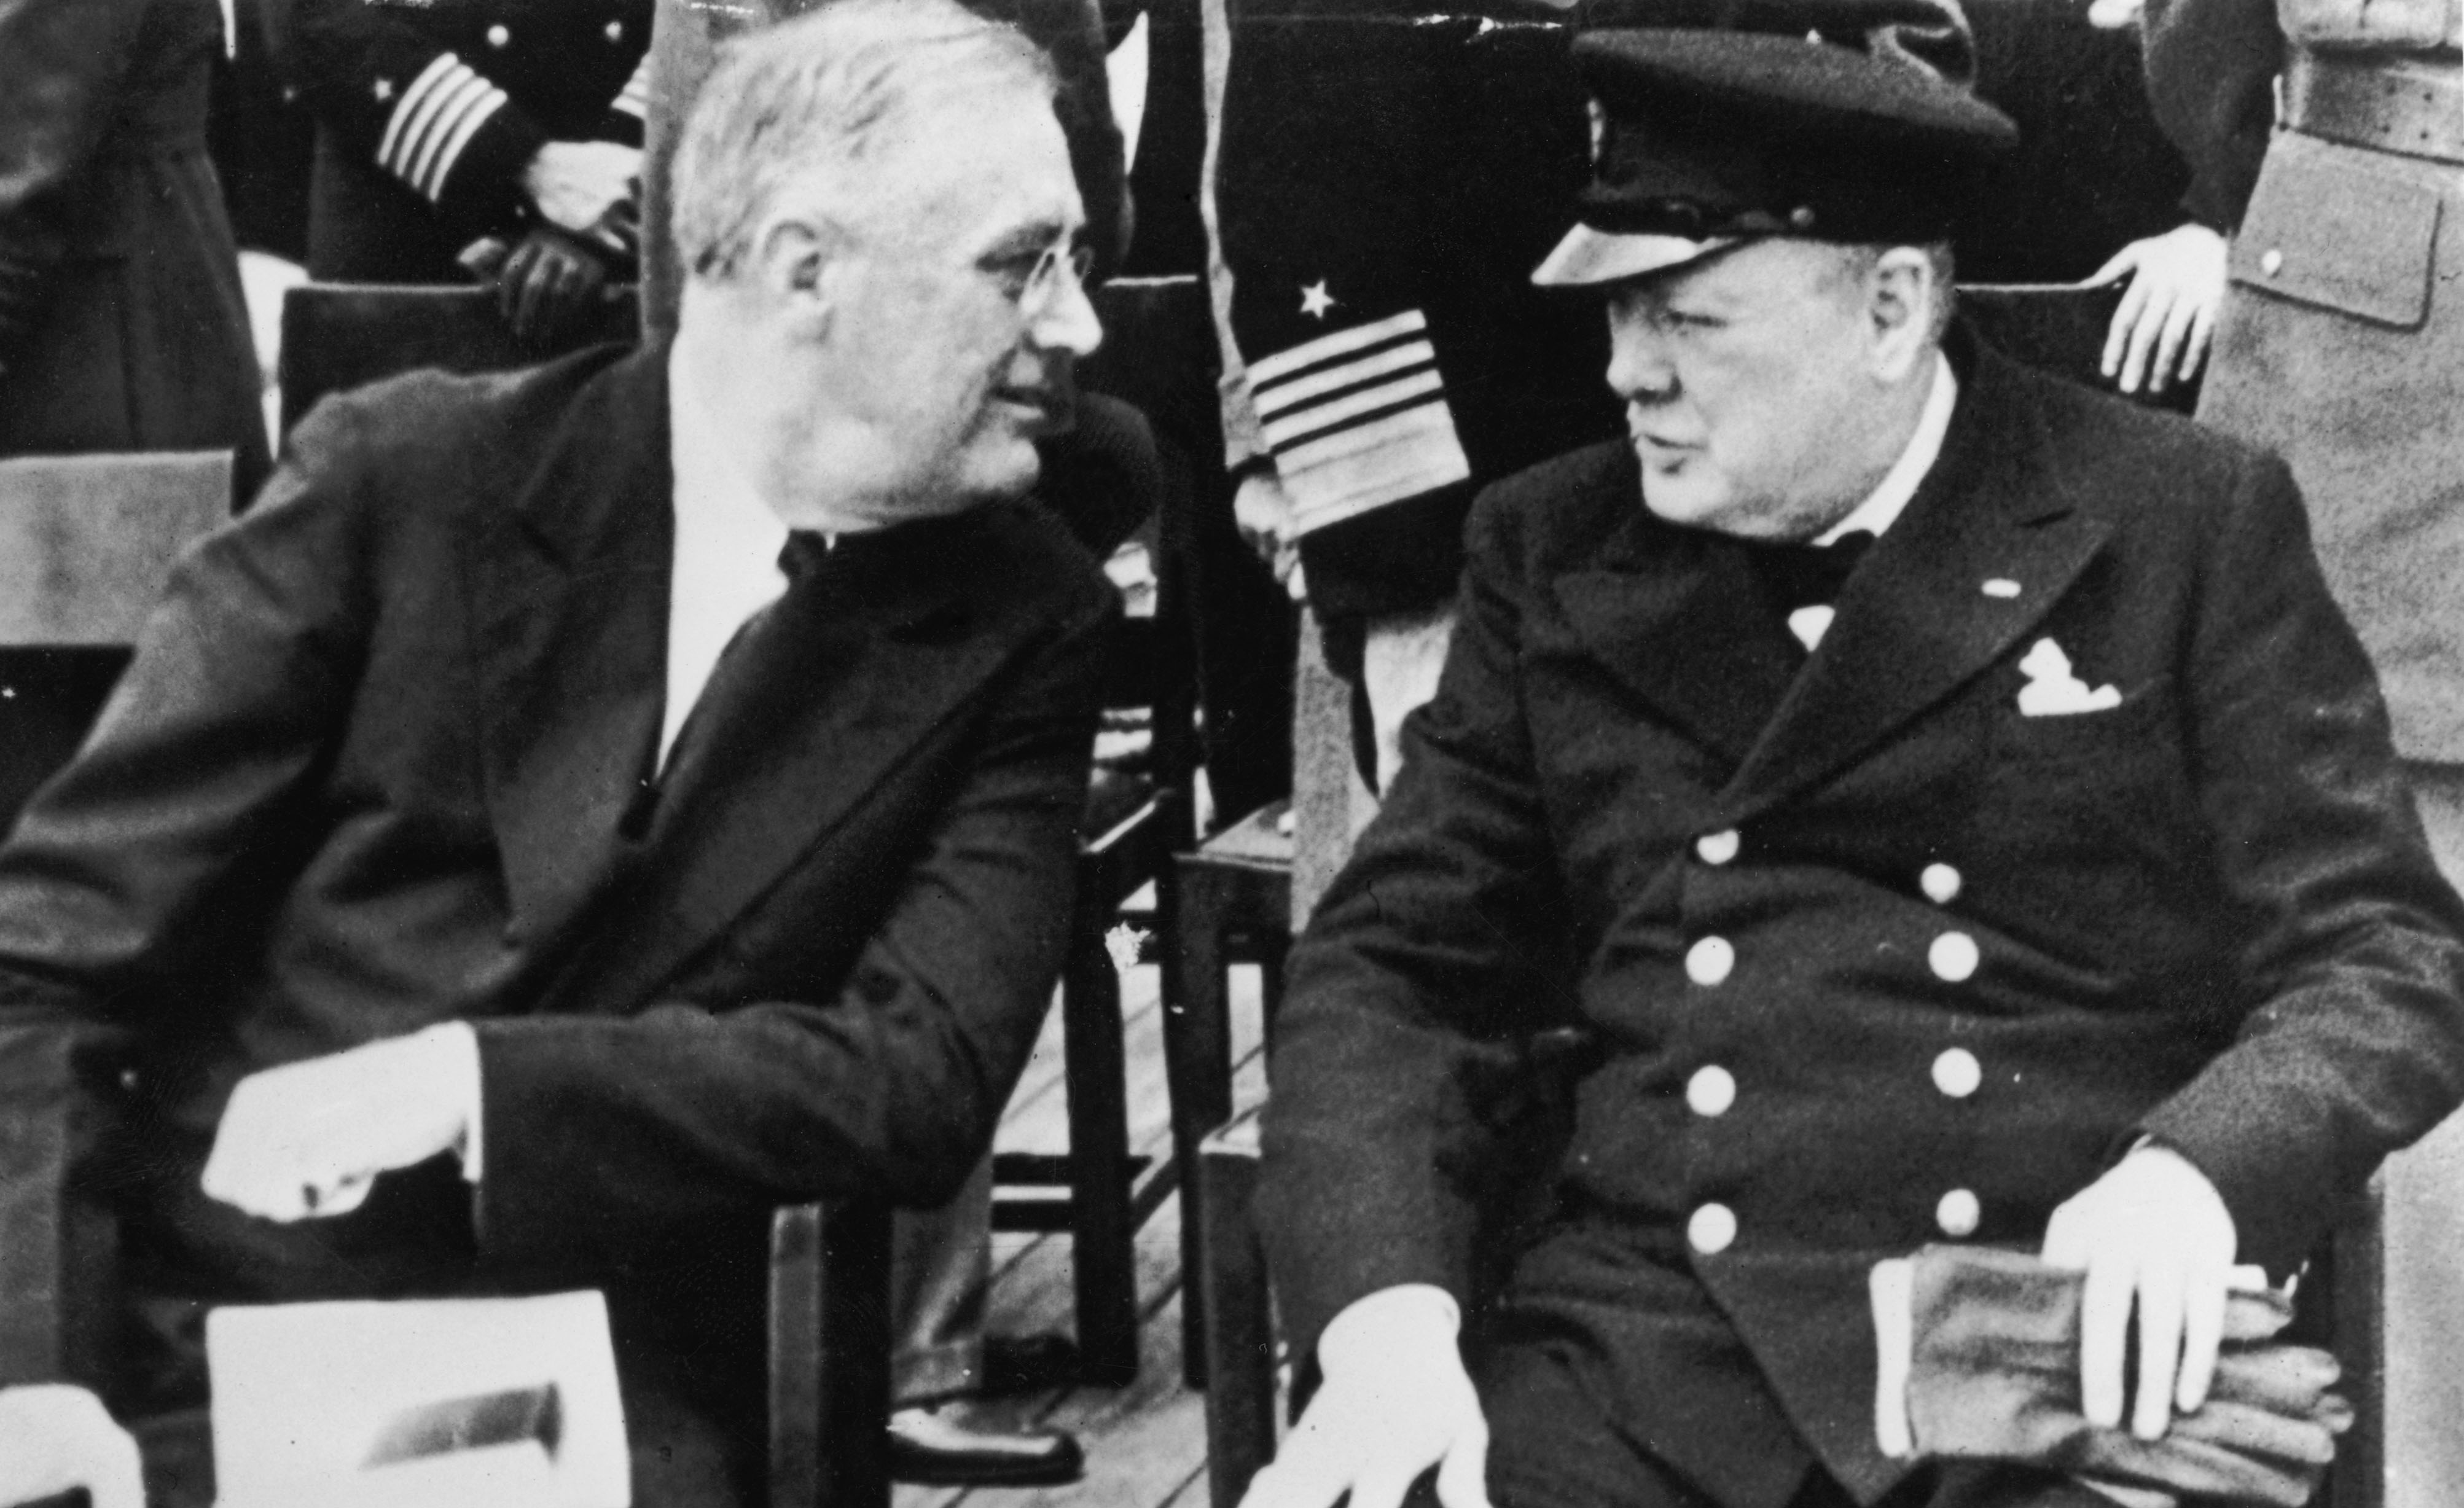 Franklin Delano Roosevelt junto a Winston Churchill. (Photo by Fox Photos/Hulton Archive/Getty Images)